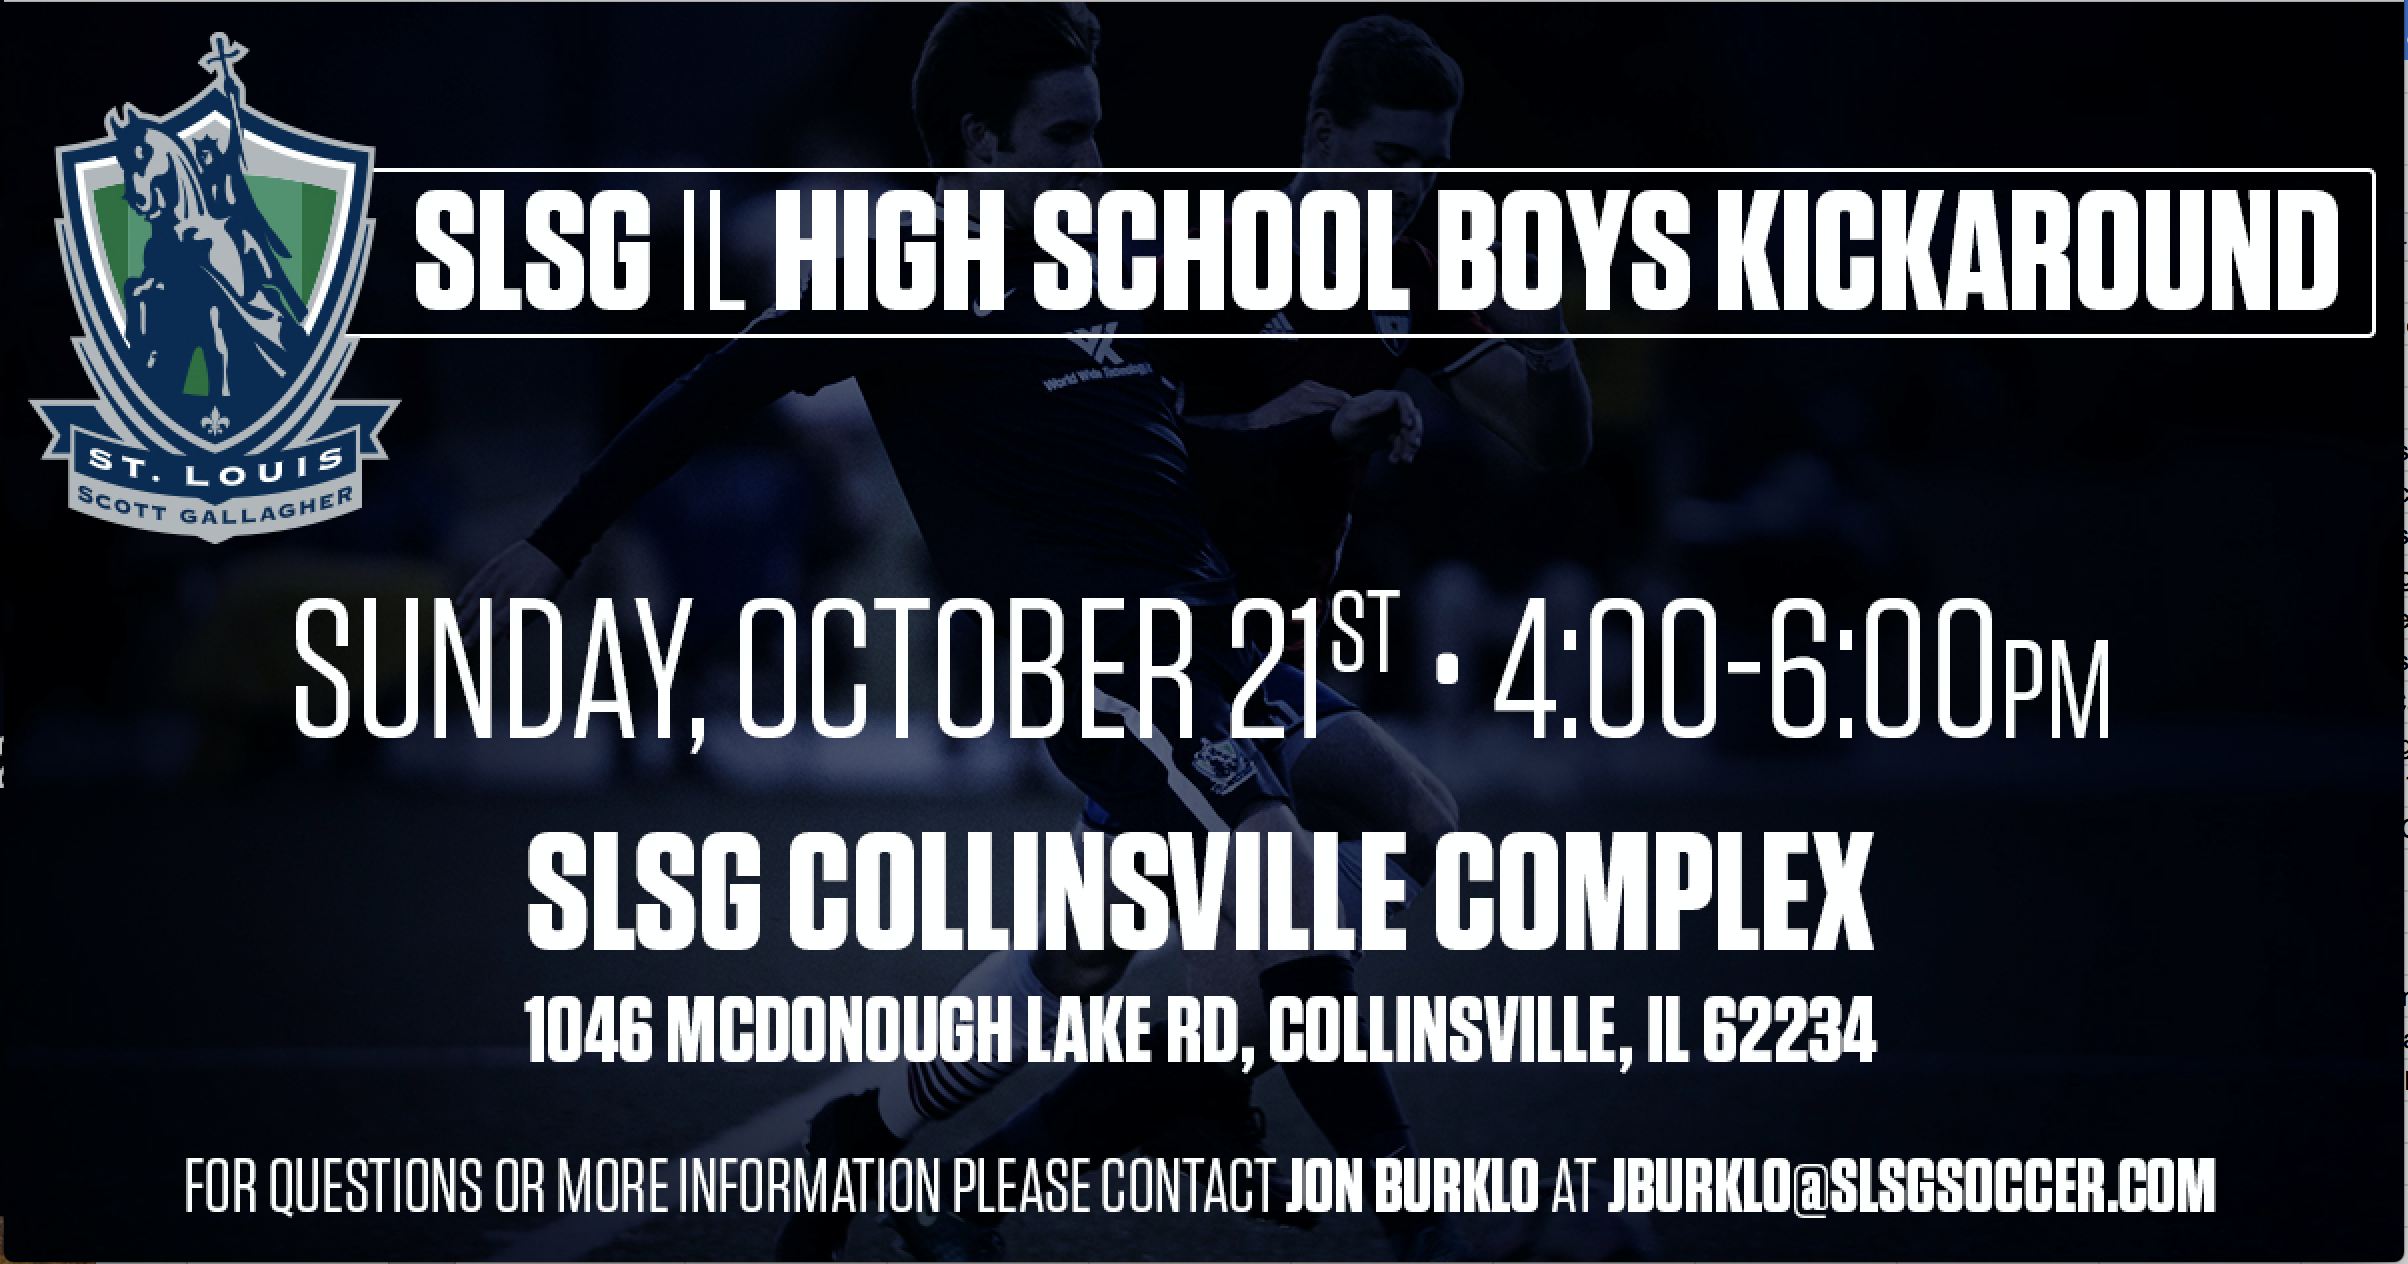 SLSG IL High School Boys Supplemental Tryout